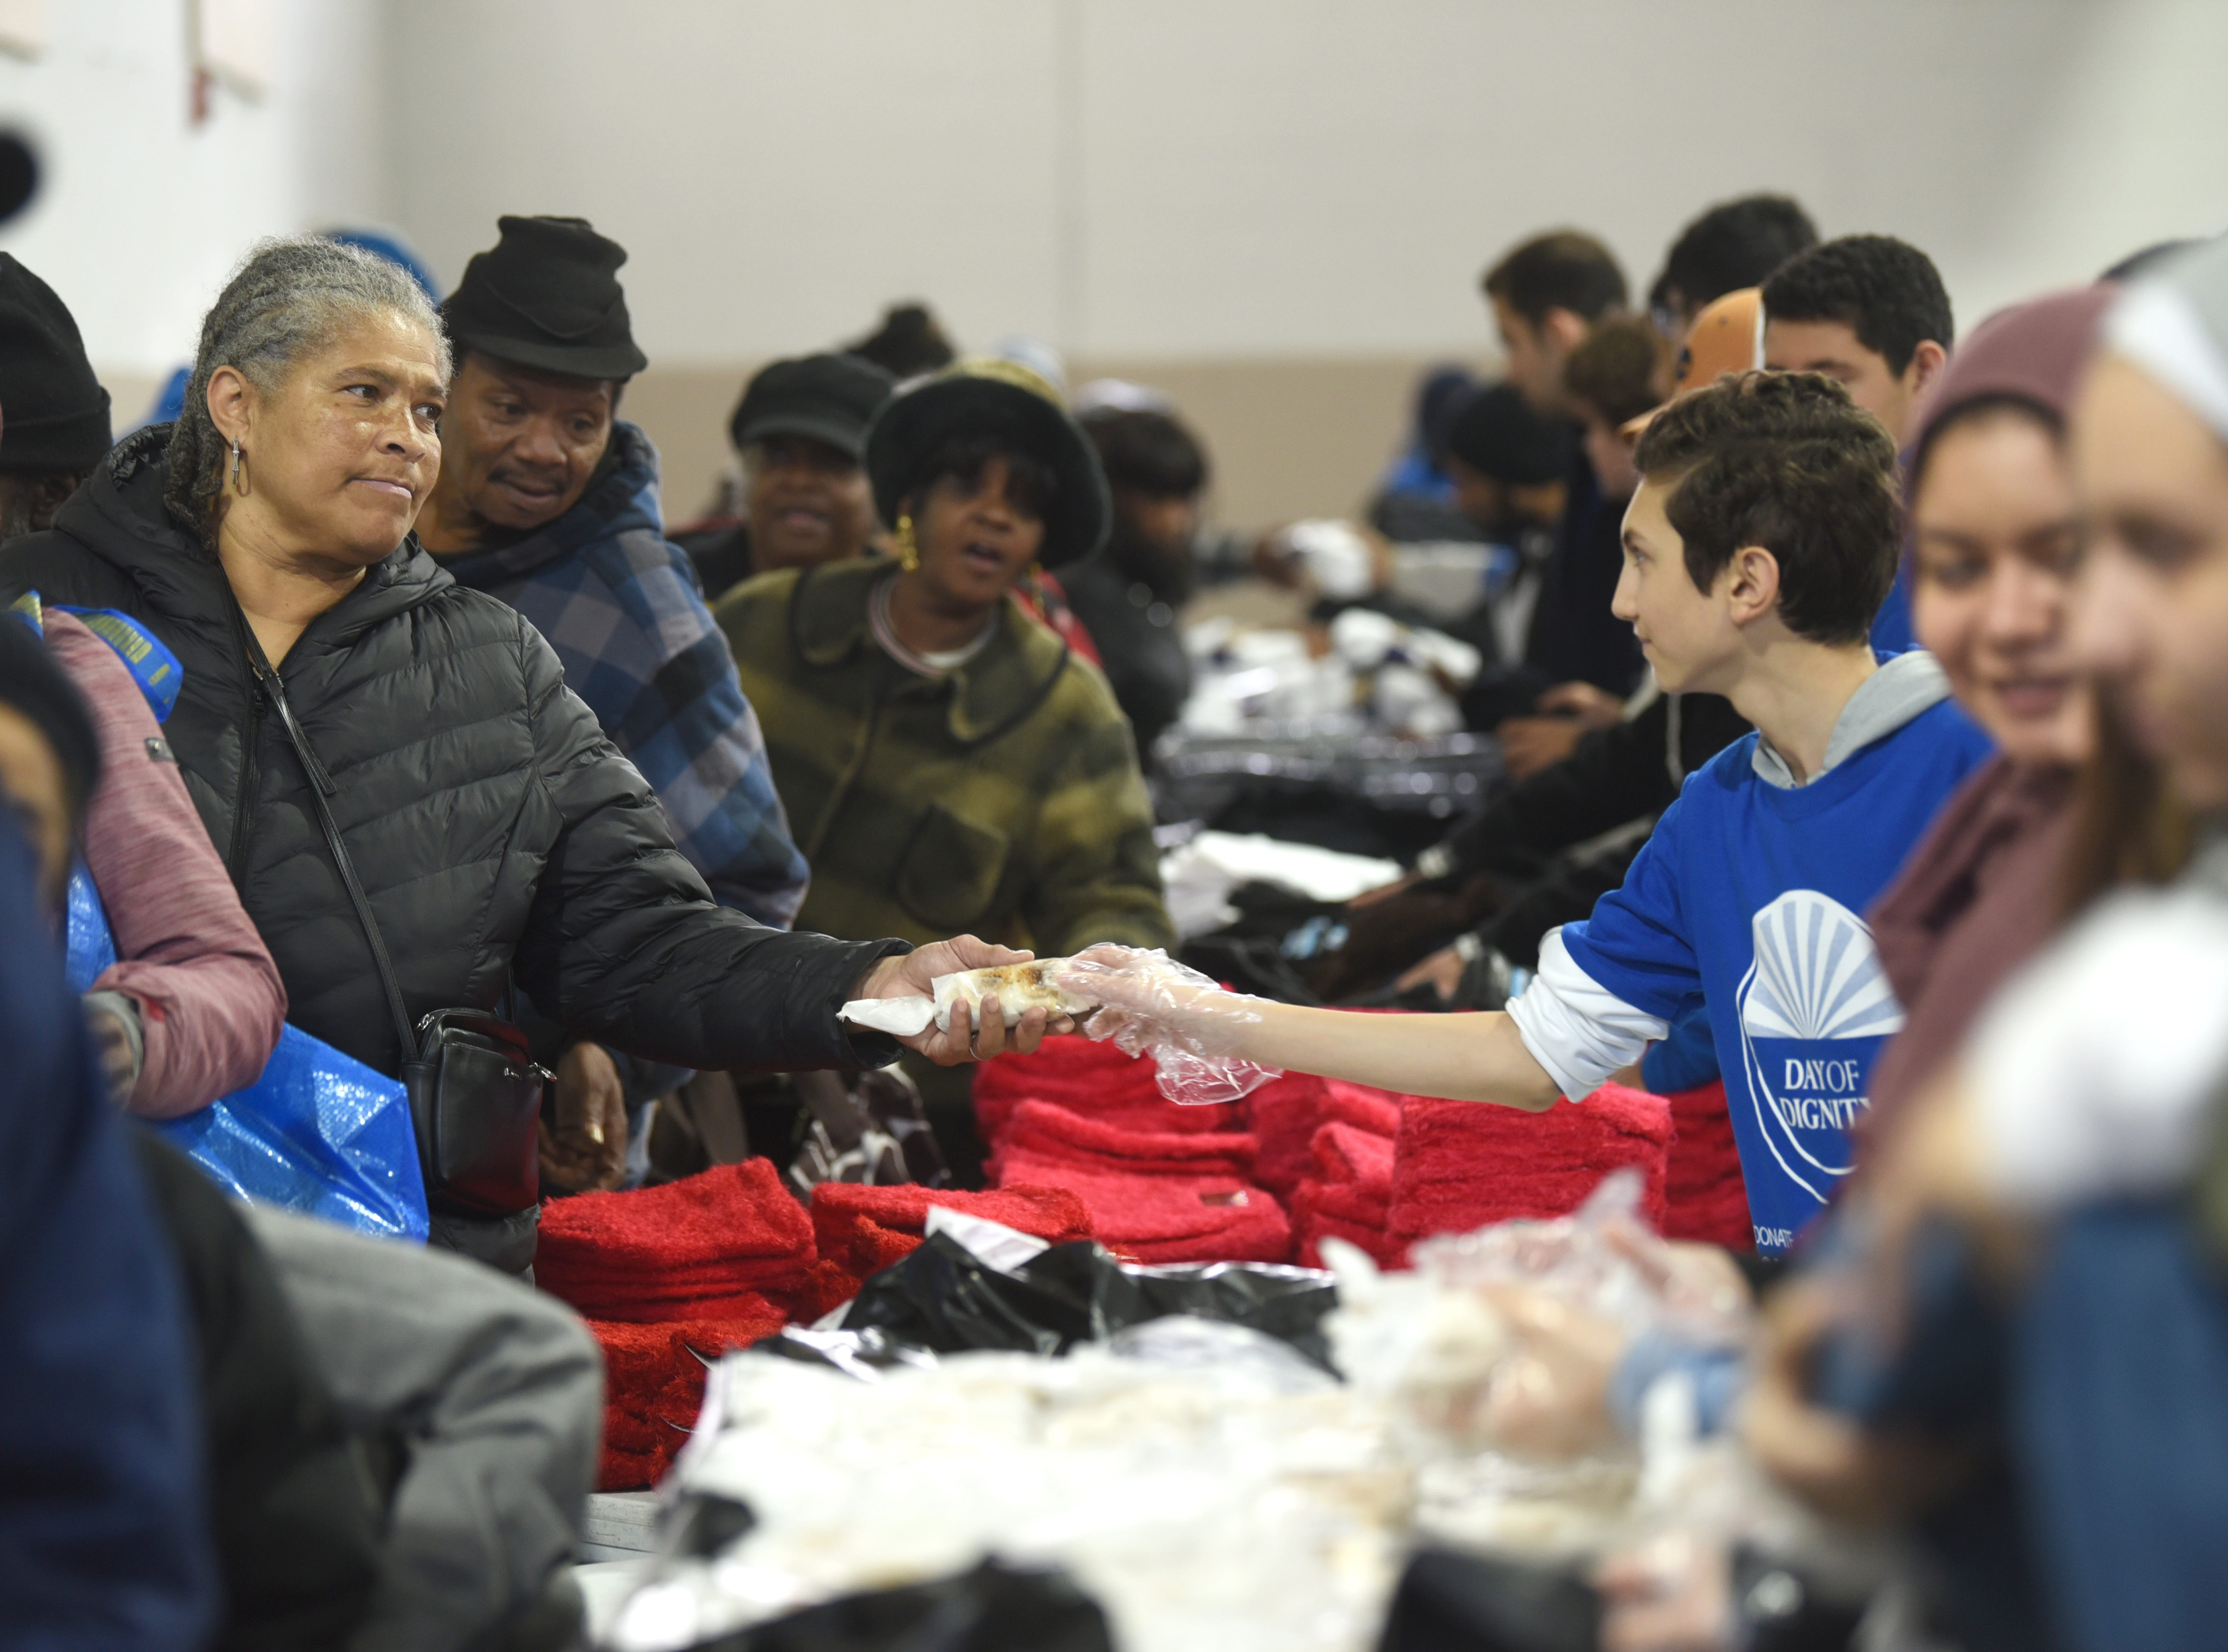 Dozens of people were helped with access to meals, winter coats, hygiene kits, and health screenings during Islamic Relief USA's Day of Dignity held at the Muslim Center Mosque and Community Center in Detroit.